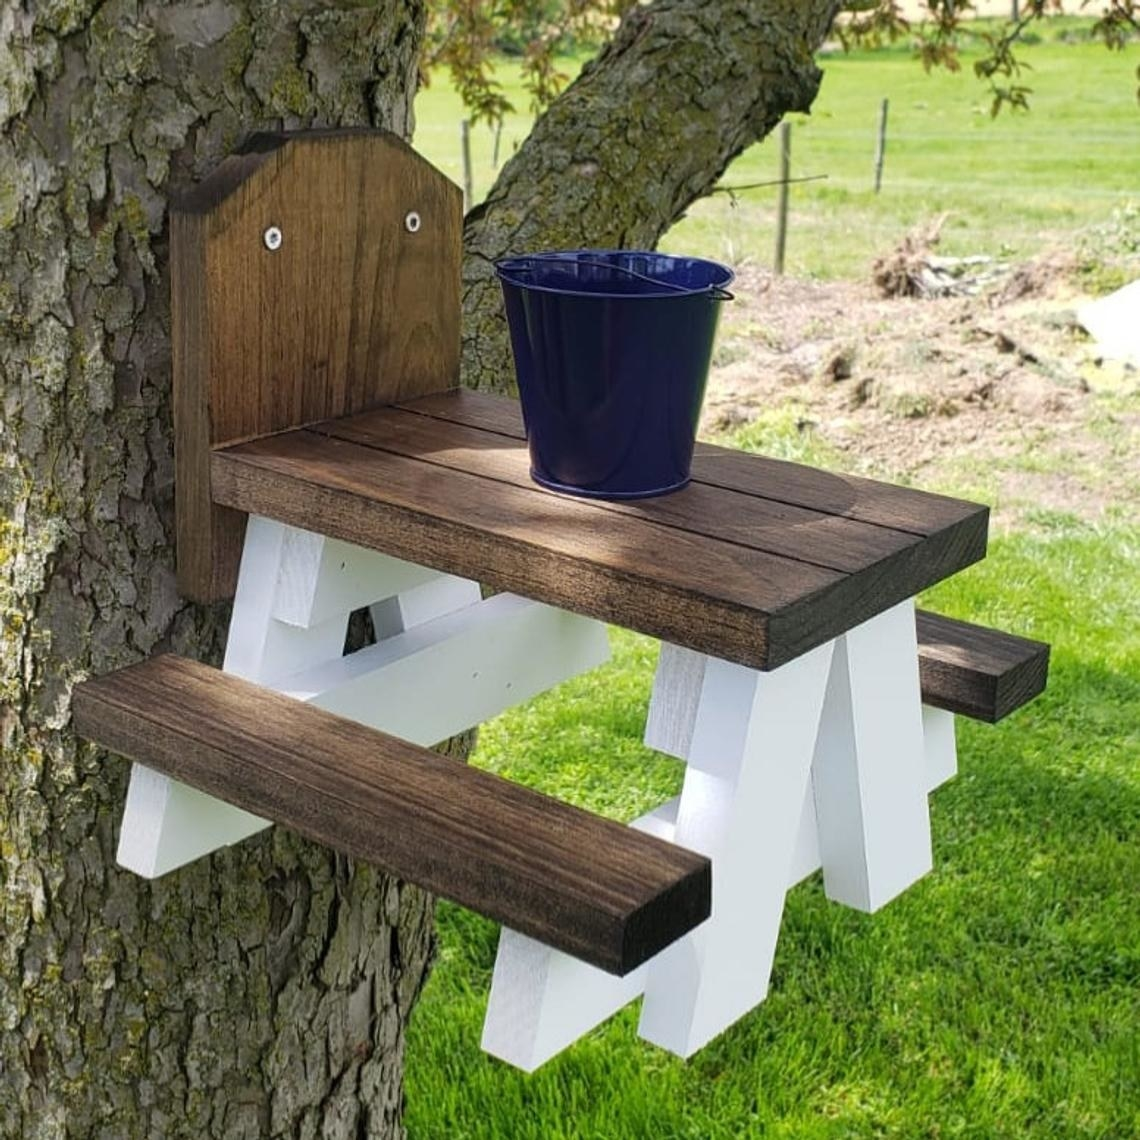 Farmhouse picnic table mounted to a tree trunk with a metal bucket on the table top